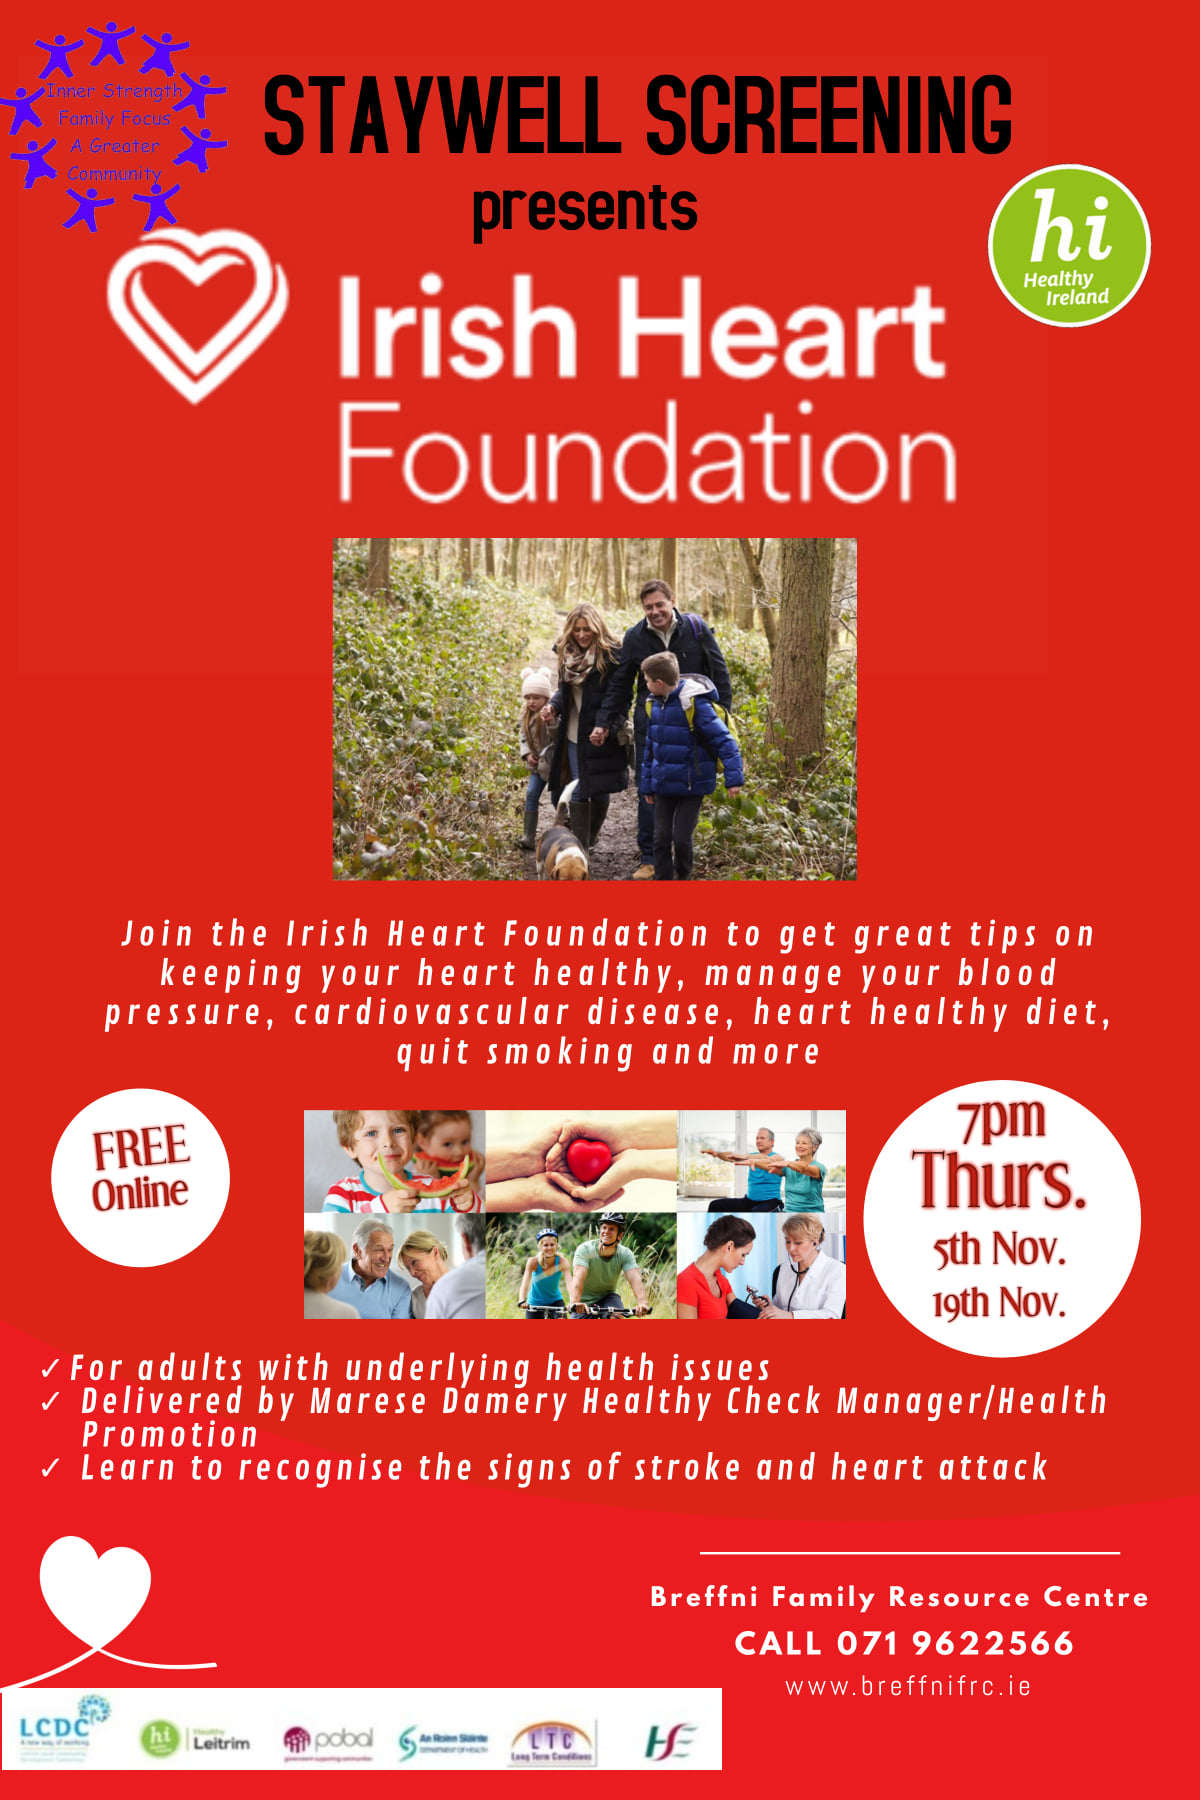 MyCarrick Event - Breffni Family Resource Centre - Irish Heart Foundation Talk